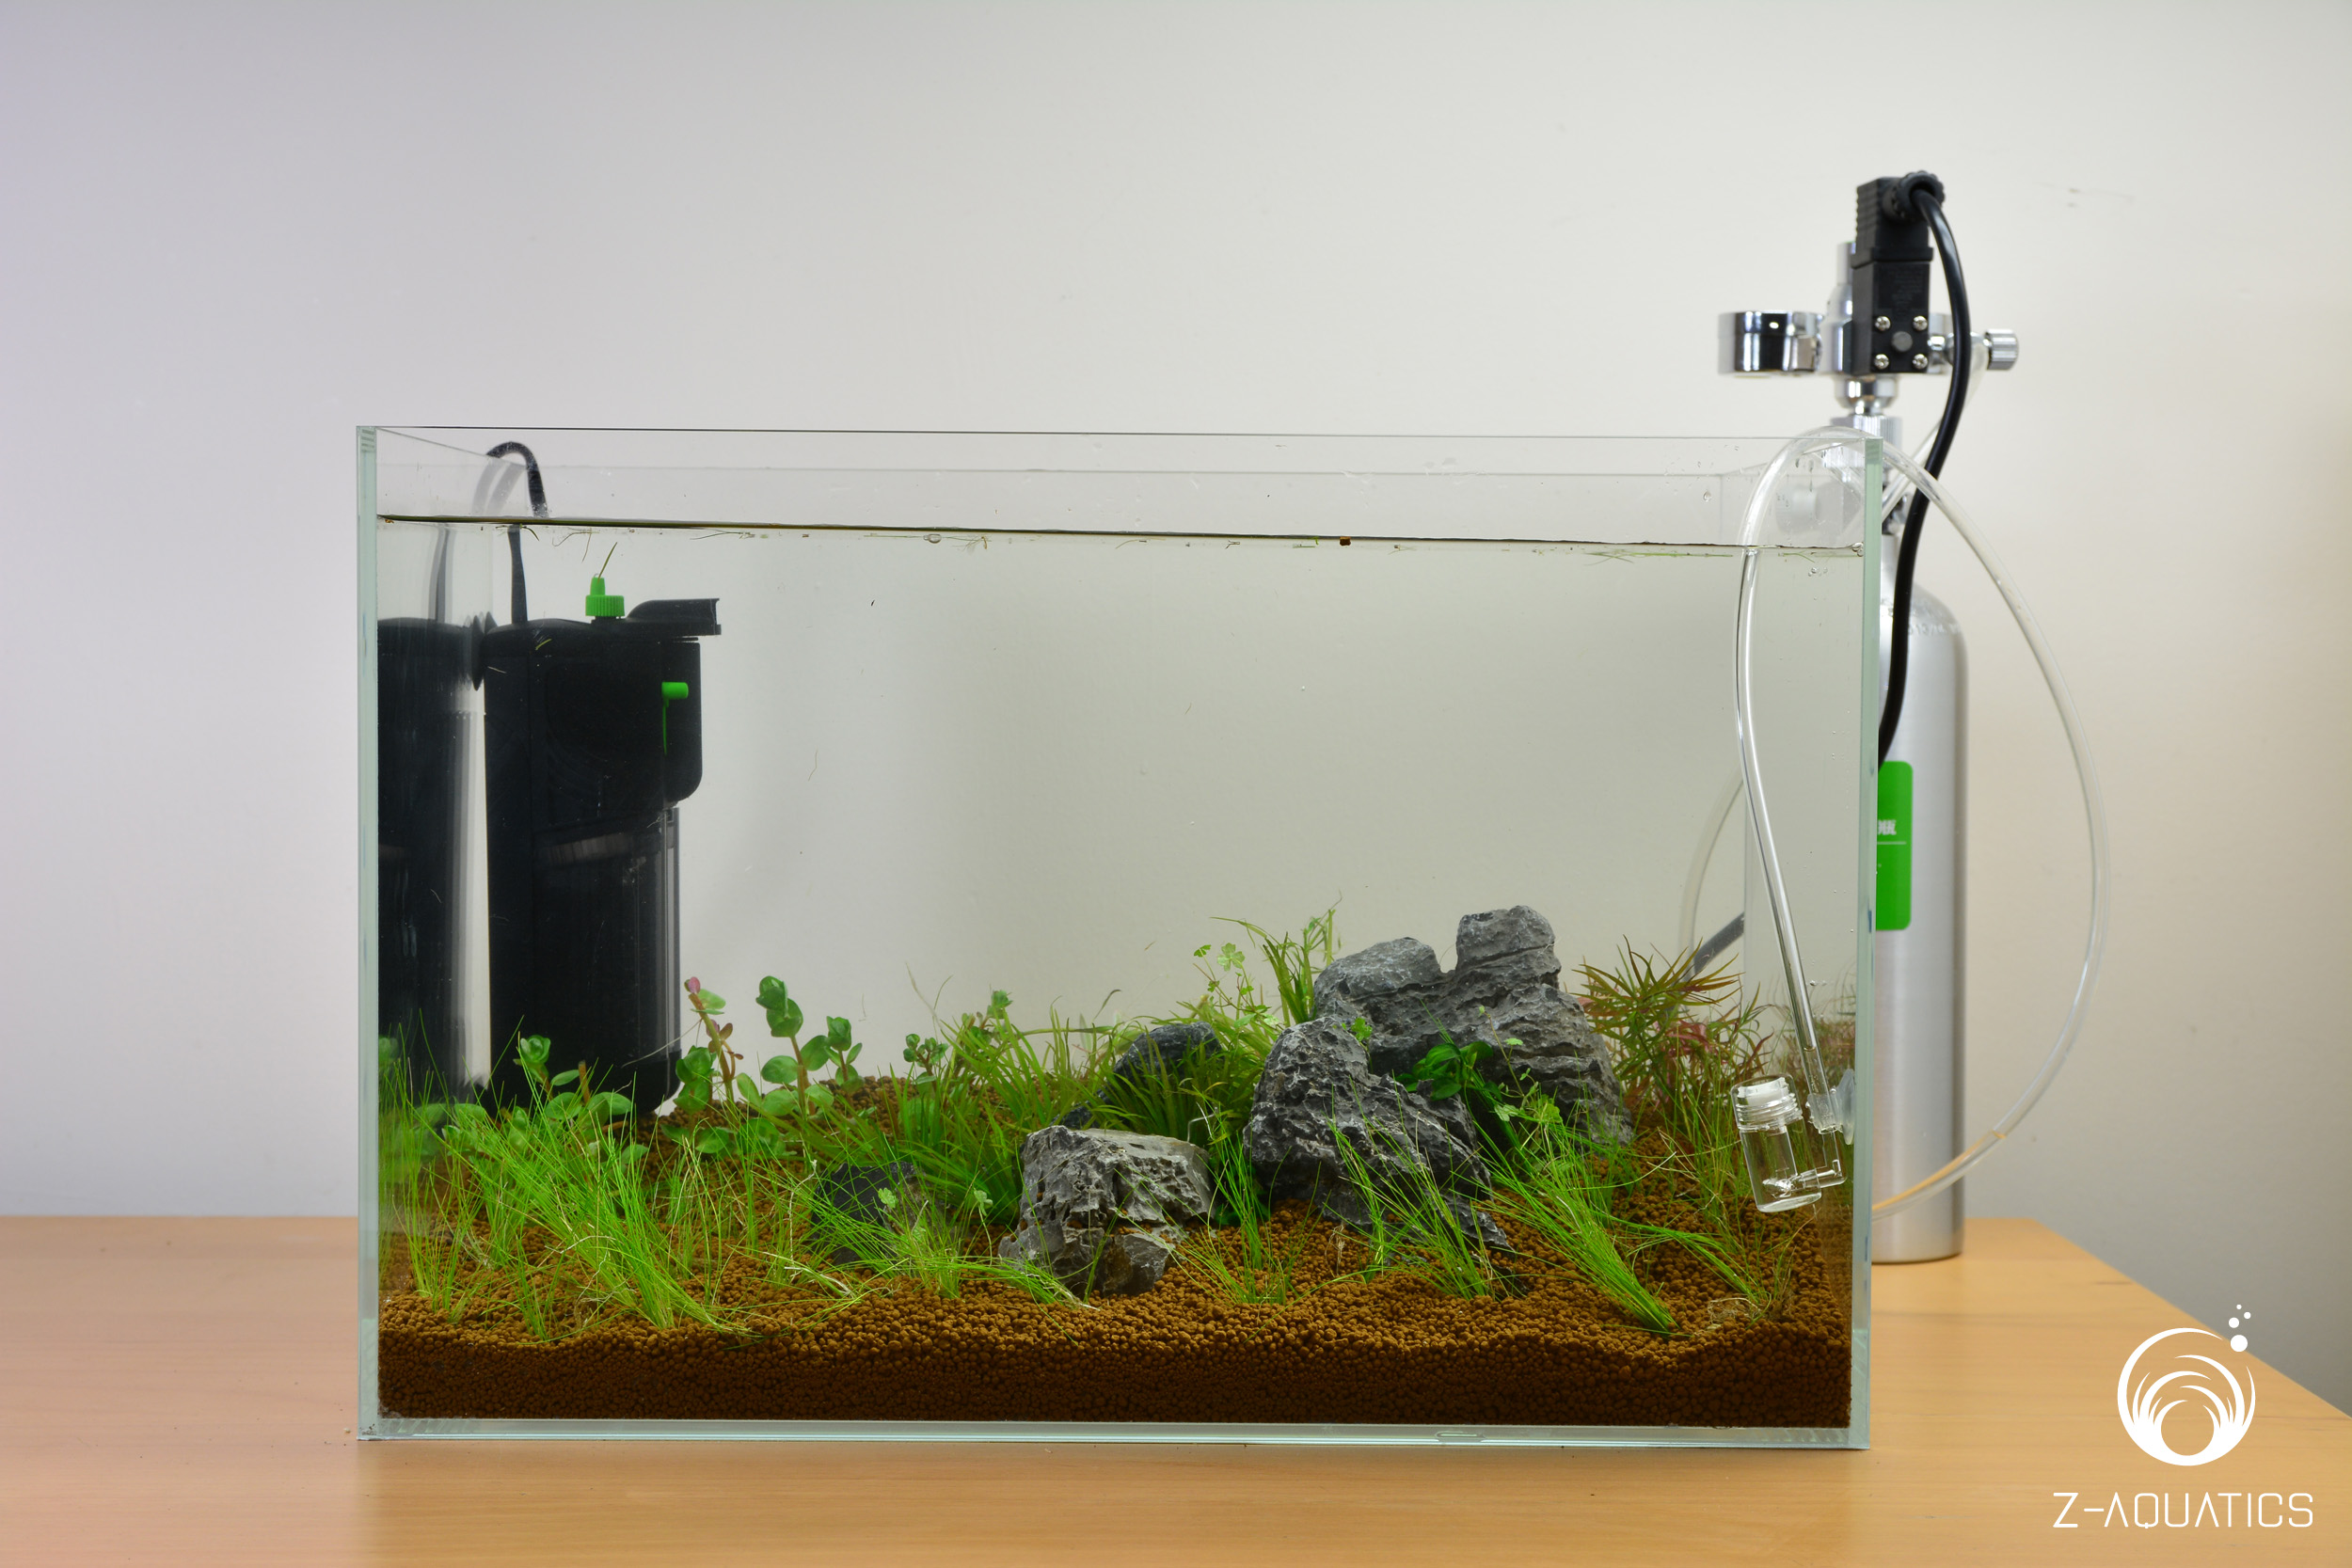 A guide for setting up a basic planted aquarium z aquatics for Setting up a fish tank